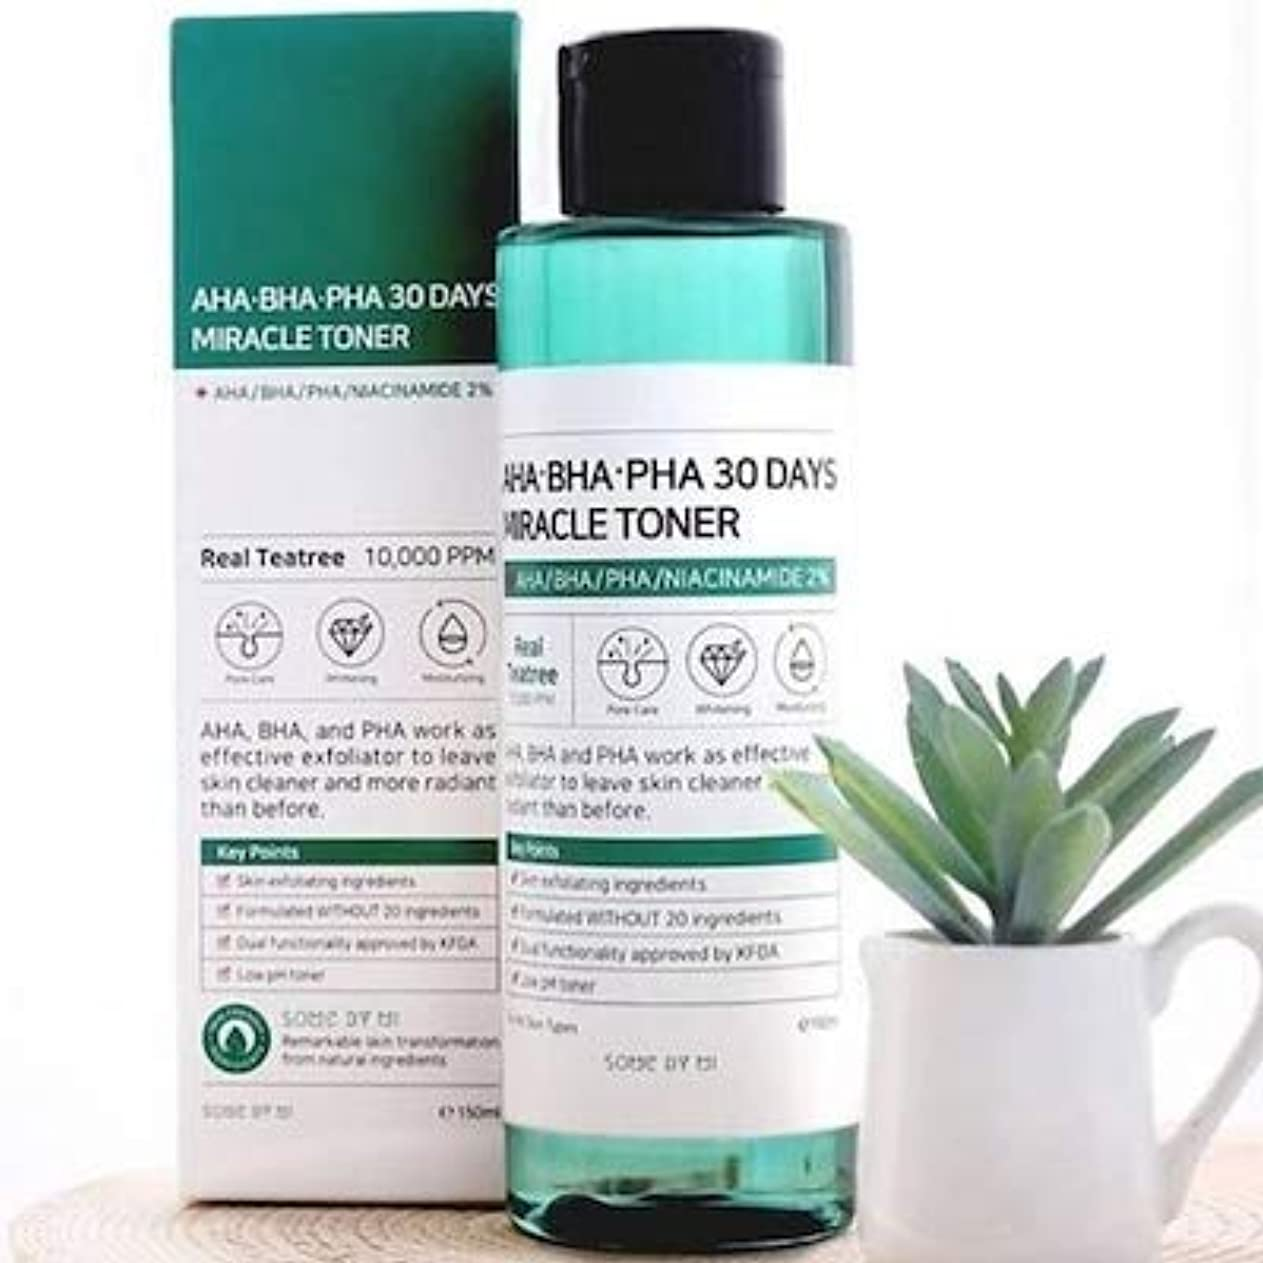 元に戻す城処方するSomebymi AHA. BHA. PHA 30Days Miracle Toner 150ml/Korea Cosmetic [並行輸入品]